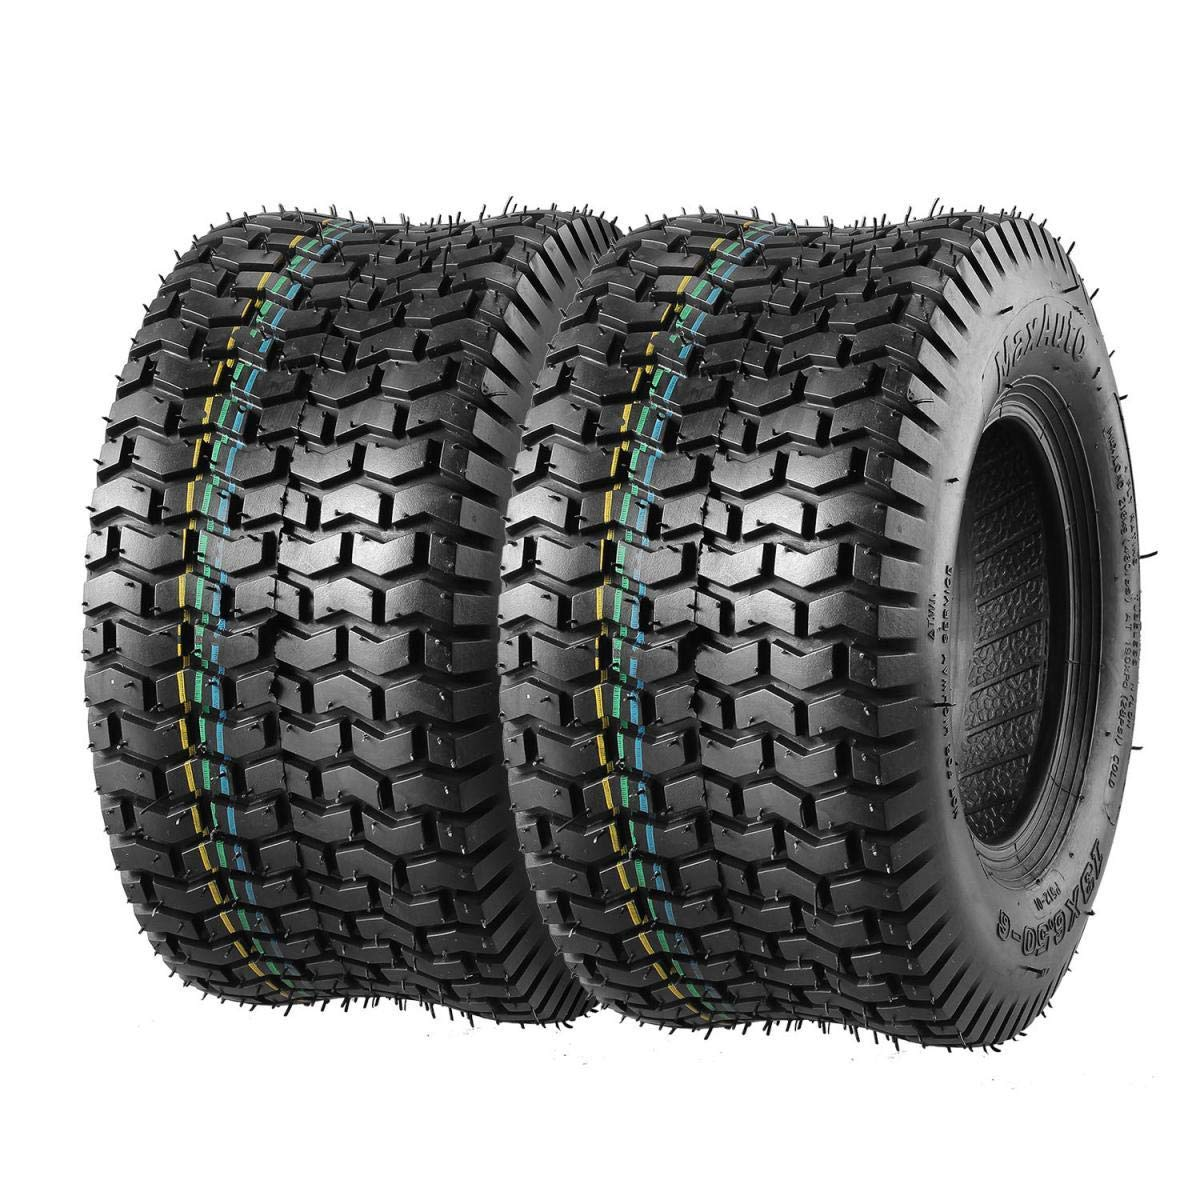 Set of 2 13x6.50-6 13x6.5x6 13/6.50-6 Turf Saver Tire Replacement for John Deere Craftsman Mower Lawn and Garden Tractor, 4PR, DOT Compliant by MaxAuto